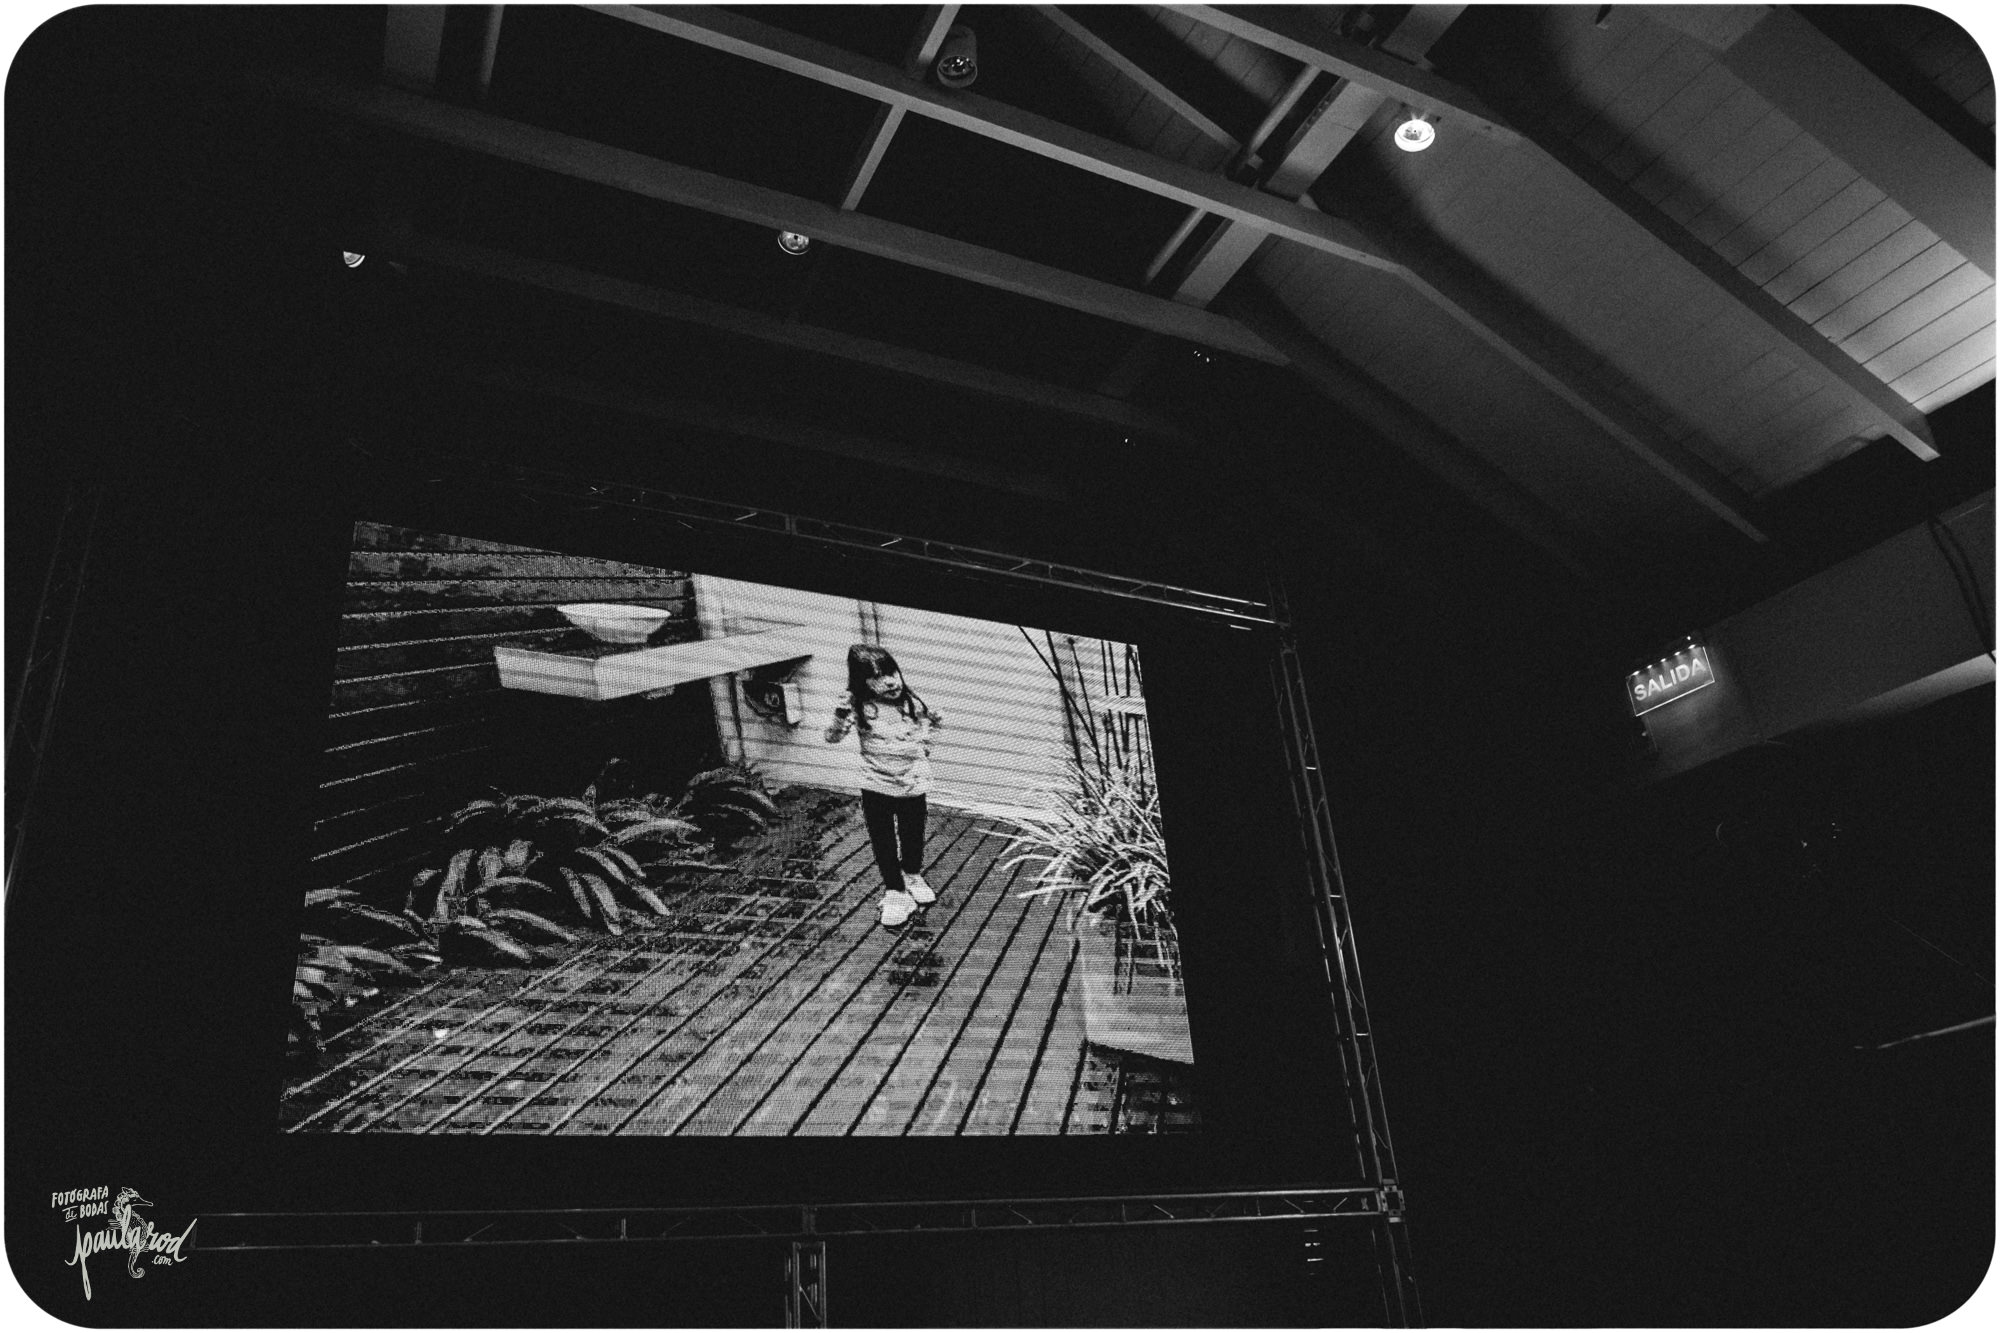 video_cronologico_para_eventos (2).jpg